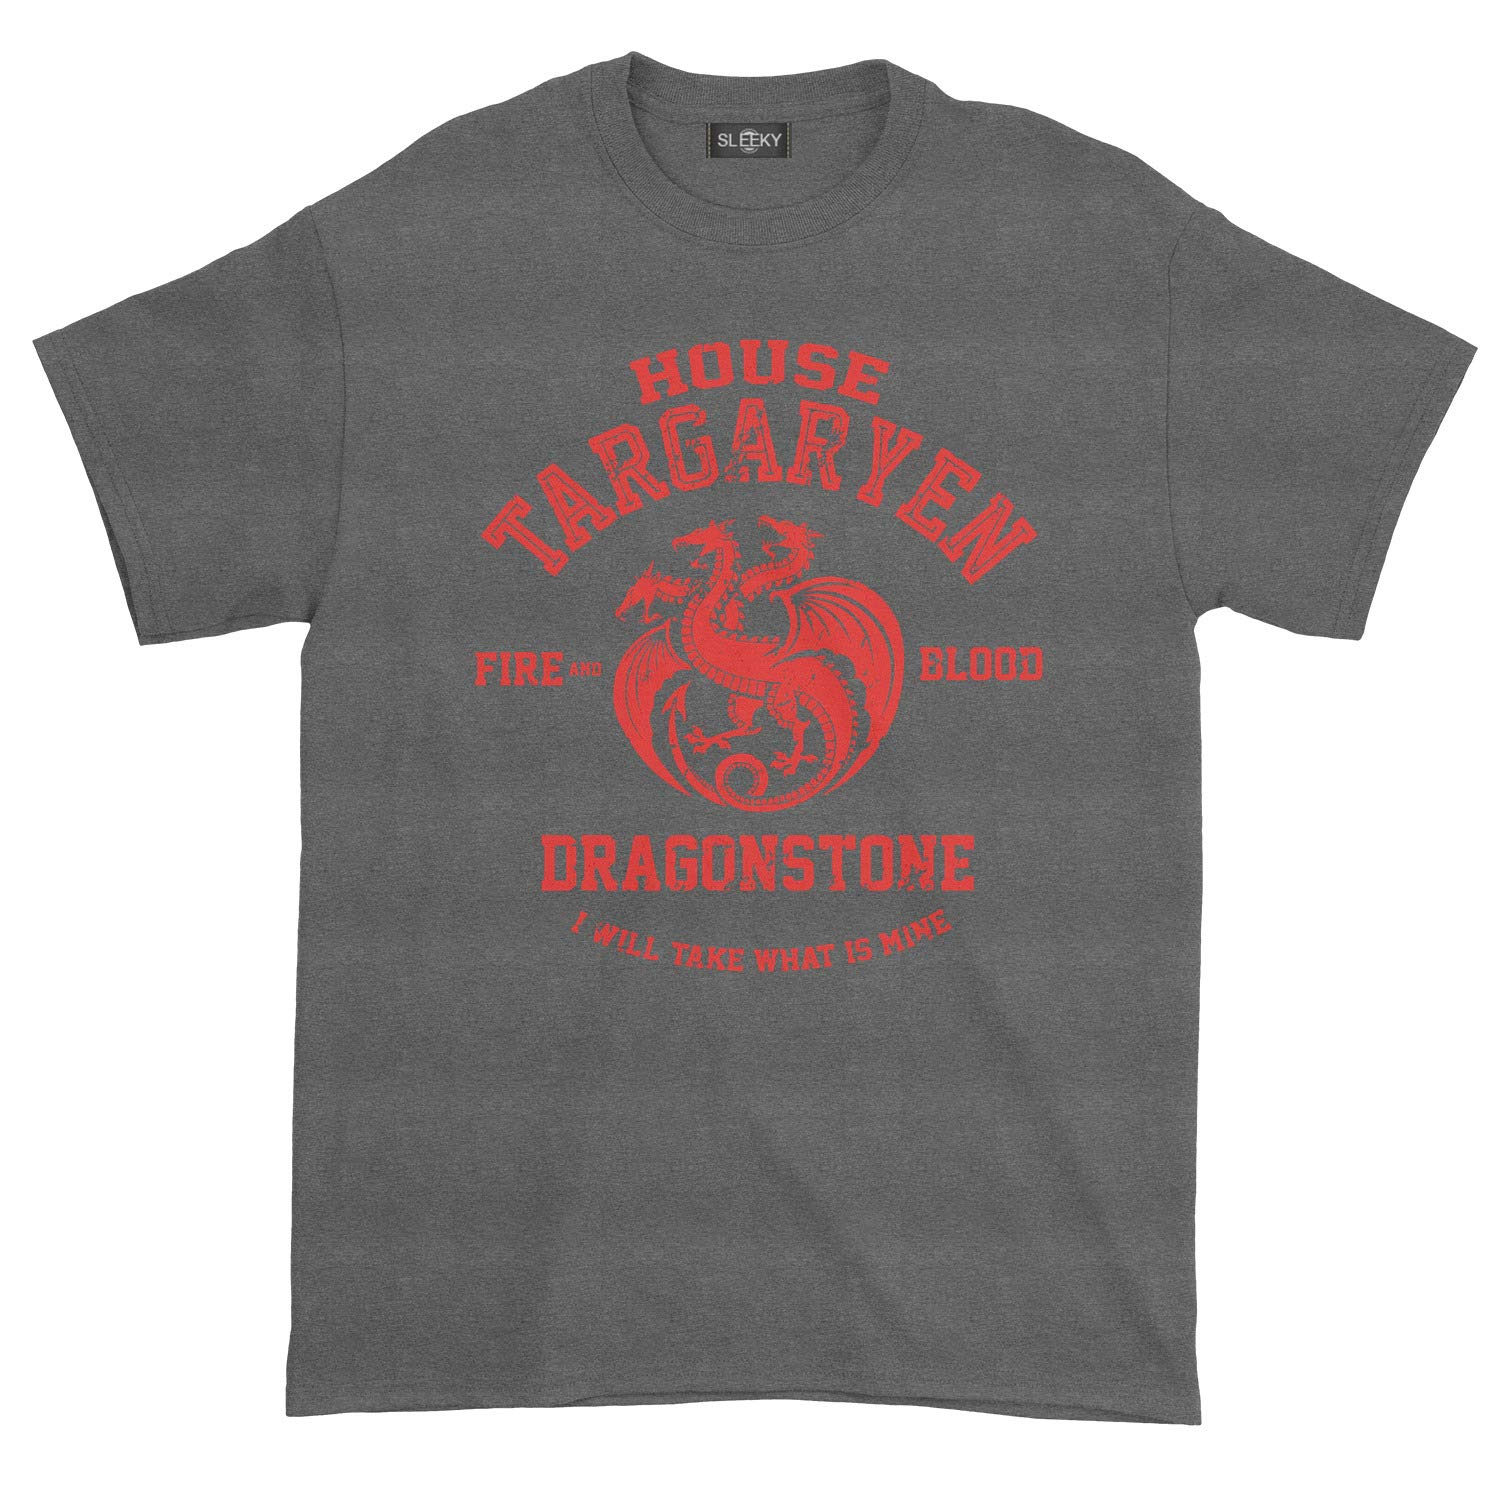 Sleeky House of Targayen Fire and Blood Dragonstone T-Shirt